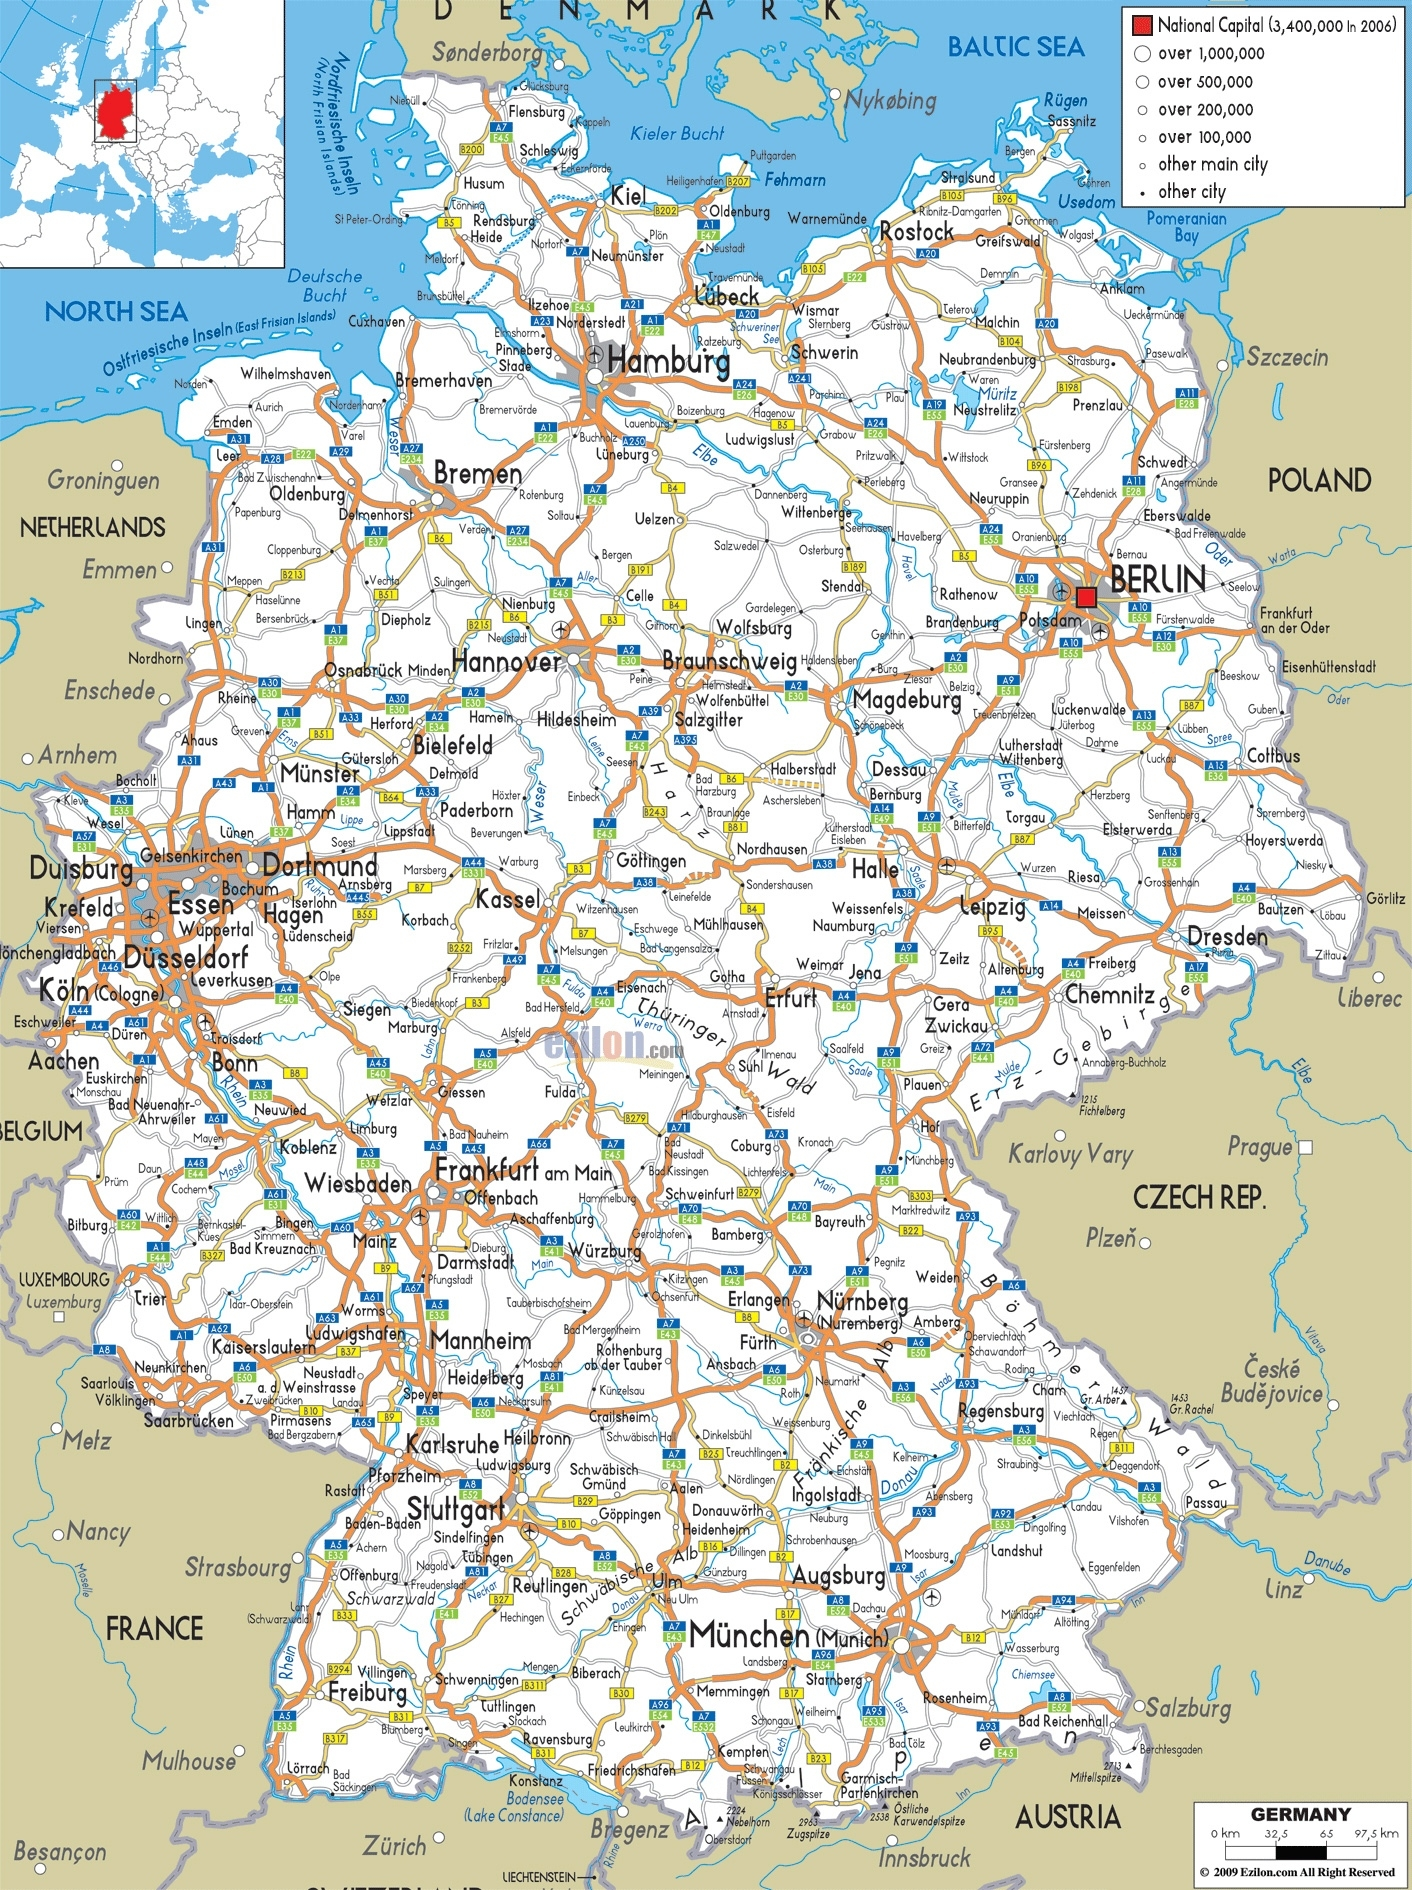 Google Map Of Germany With Cities And Towns And Travel Information regarding Free Map Of Germany With Cities And Towns